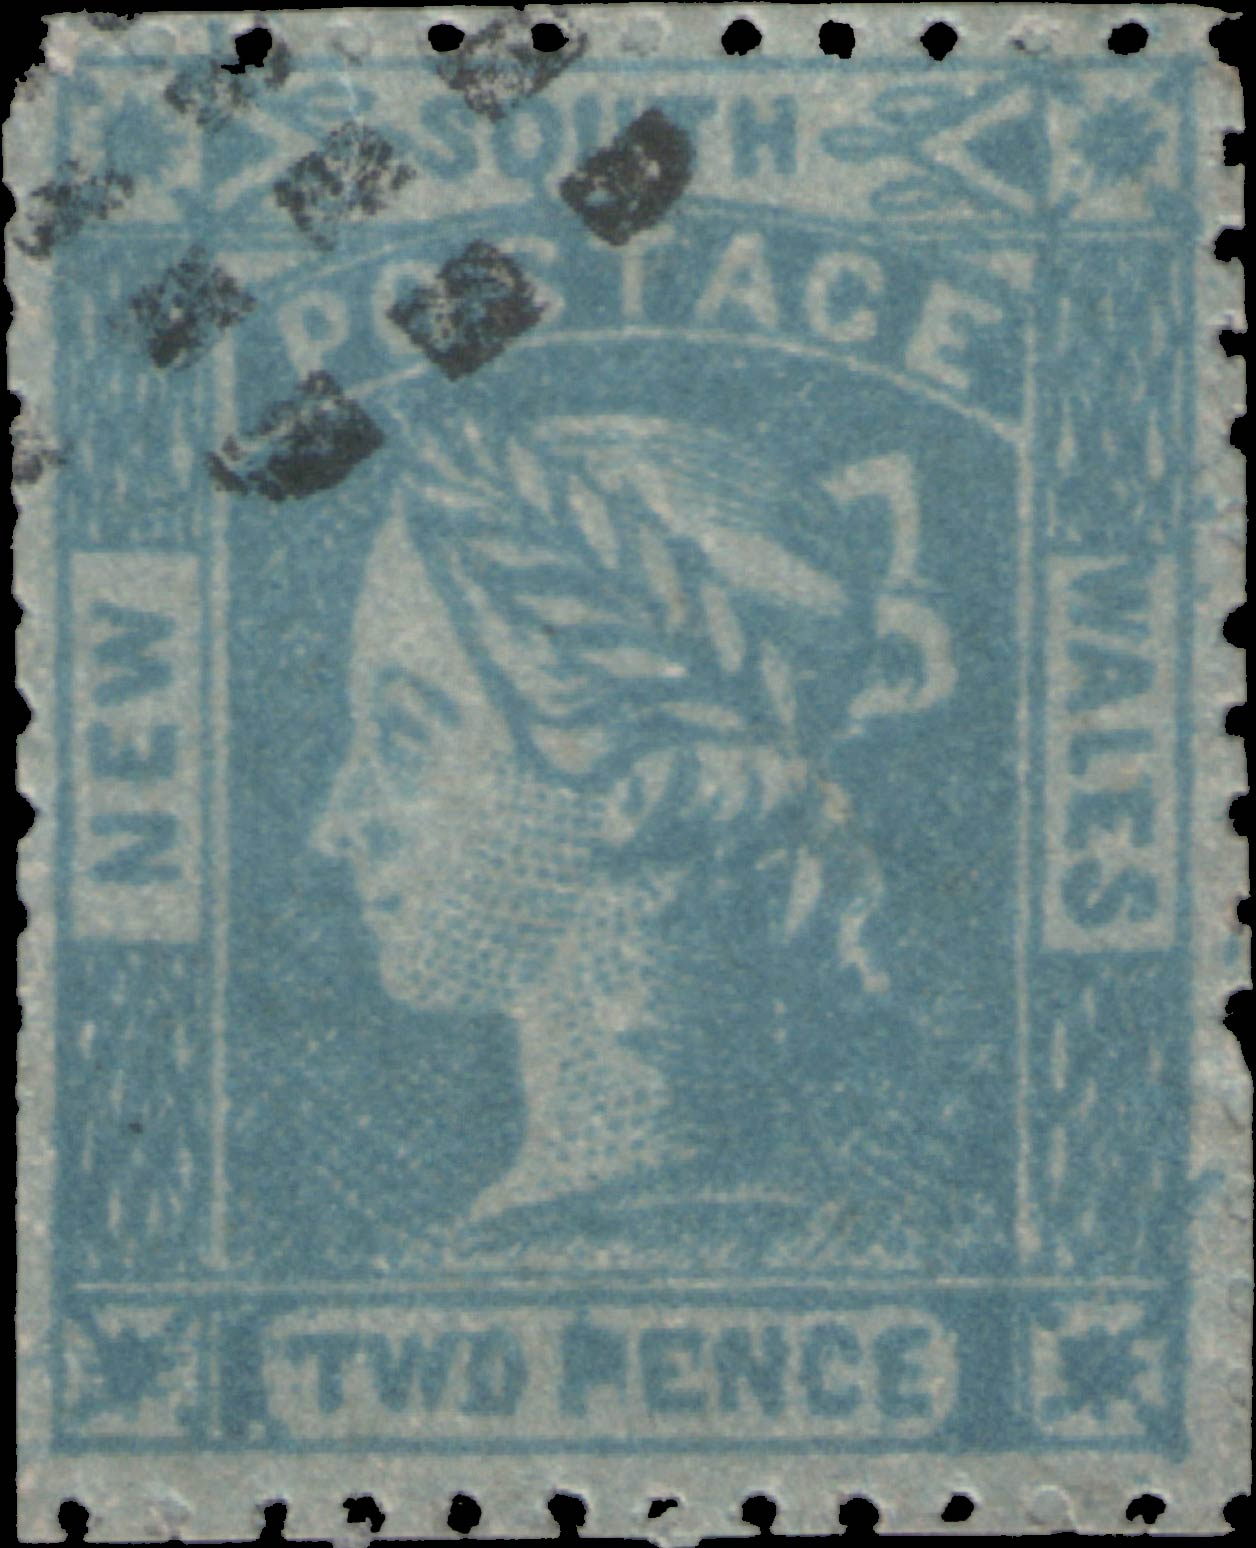 New_South_Wales_QV_2p_Forgery